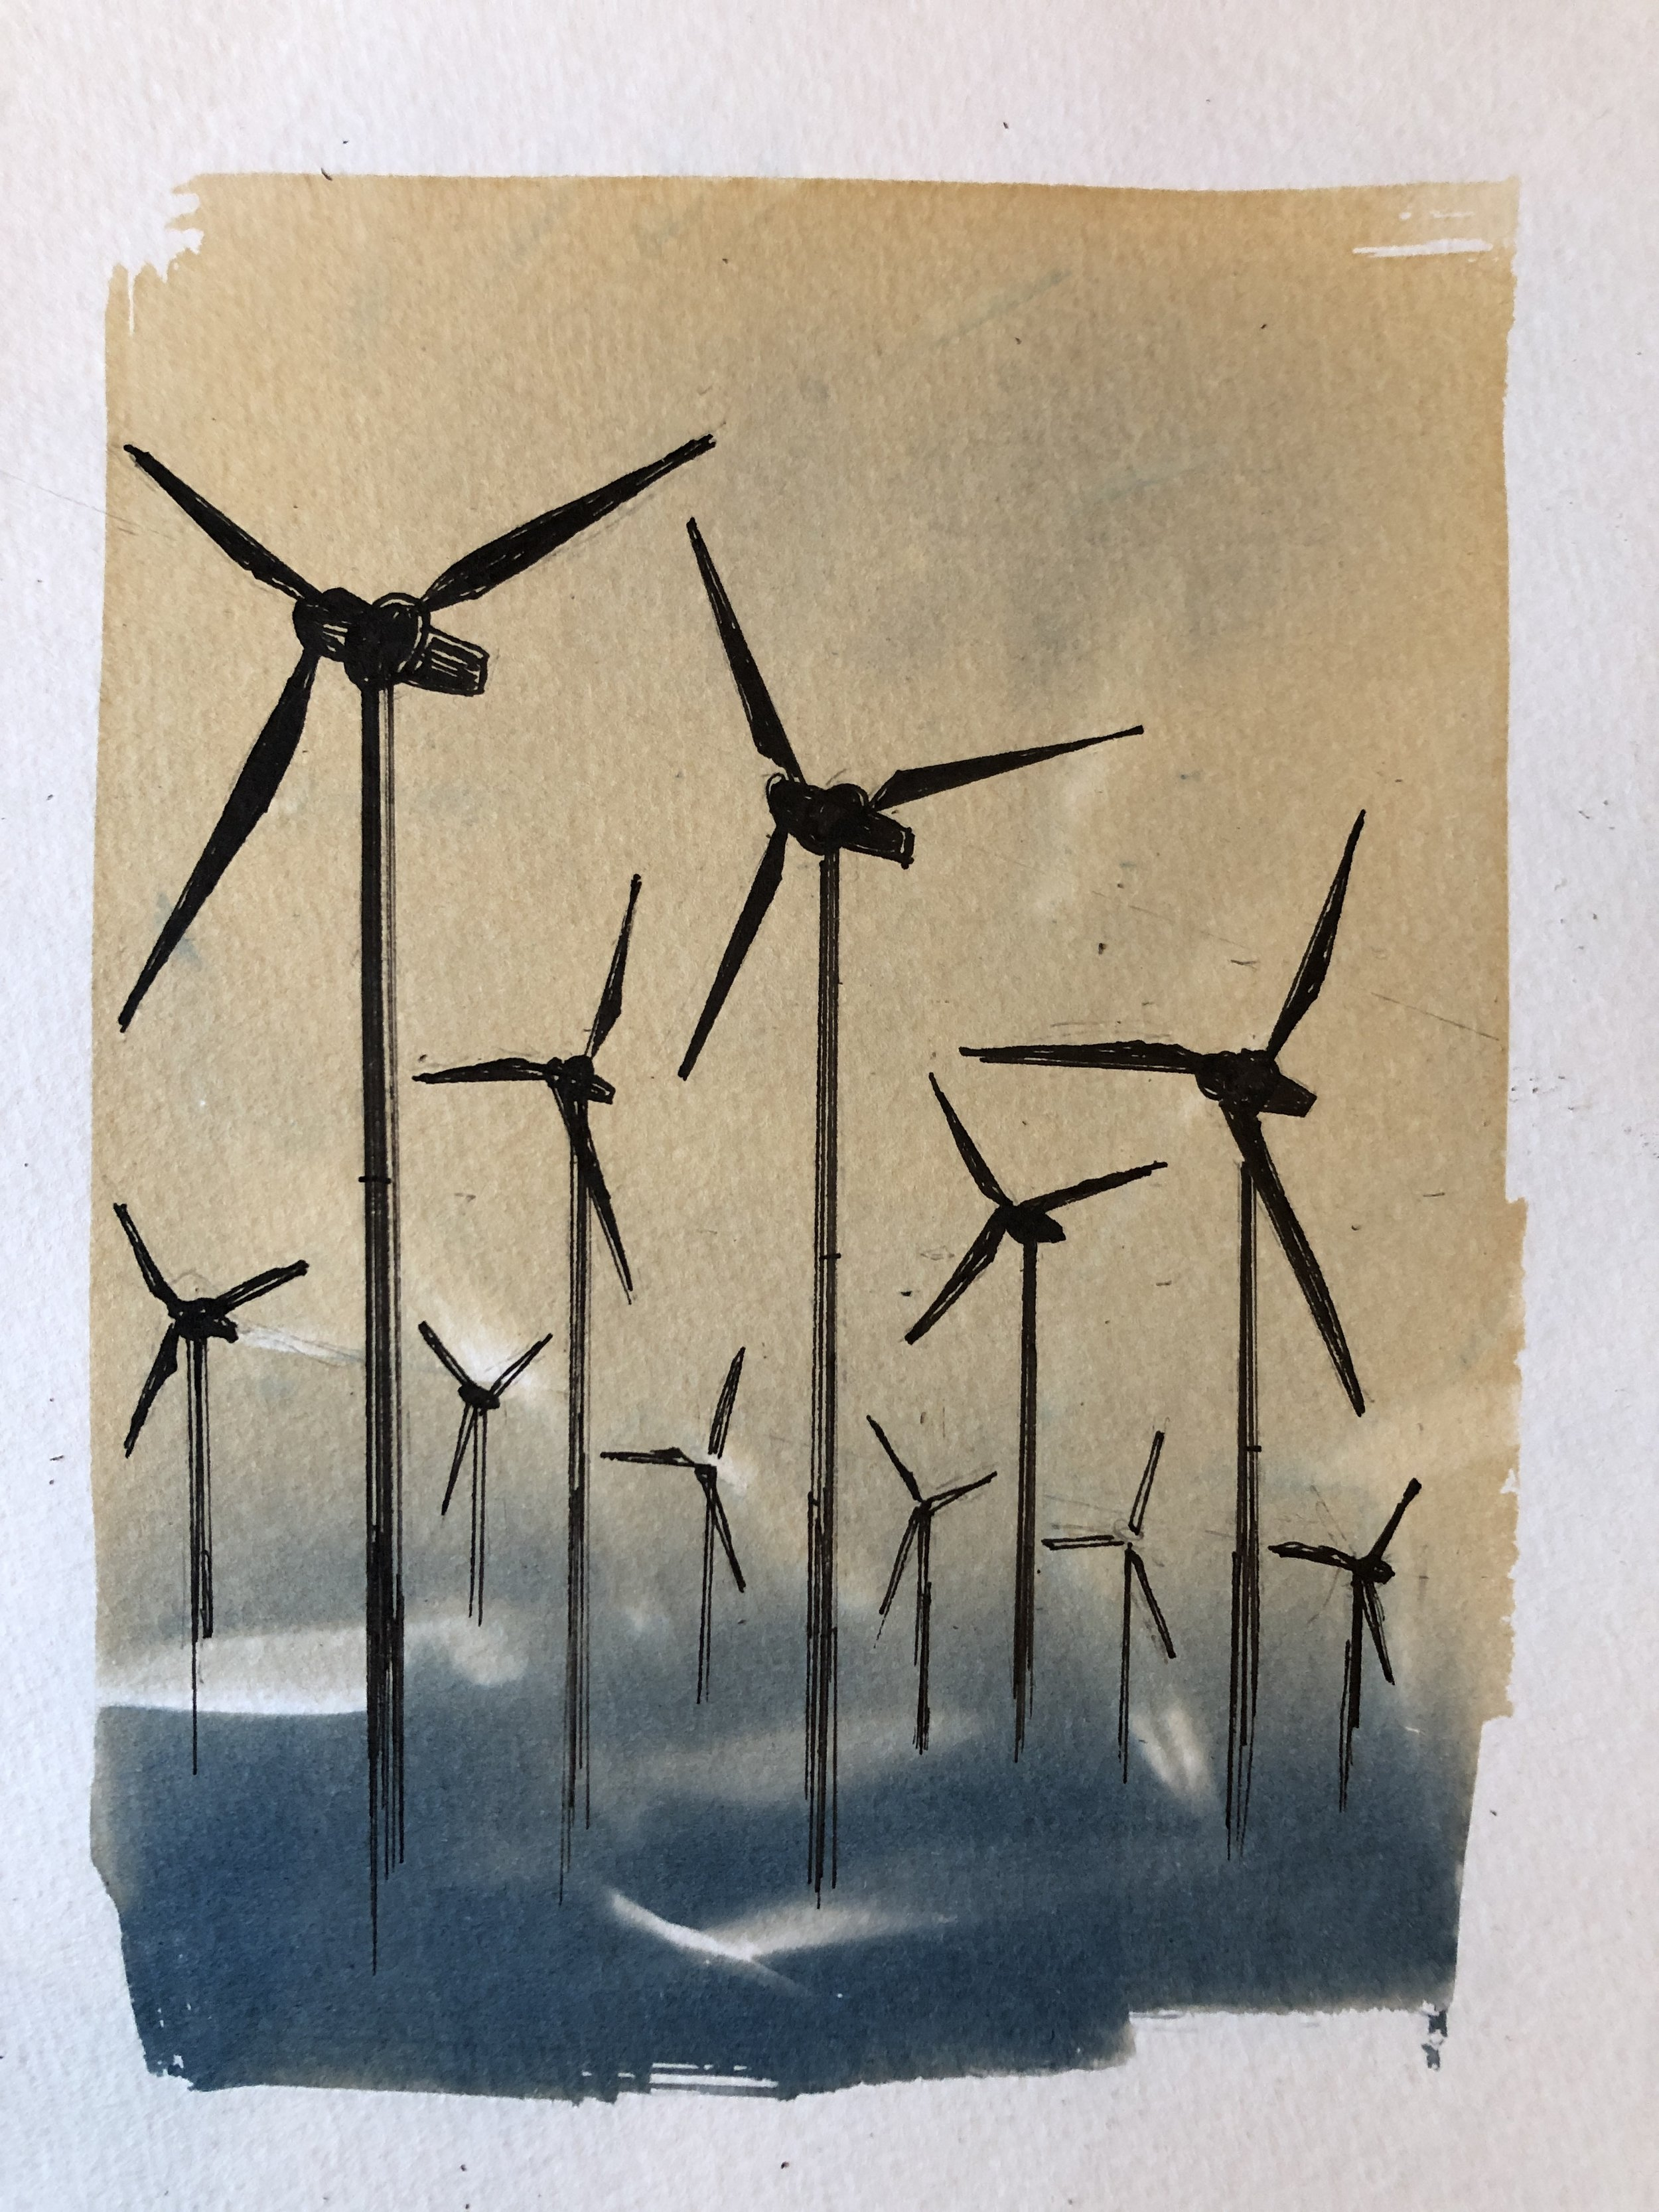 Marie Craig,  Entanglement 9 (wind turbines),  pen and ink on toned cyanotype photograph, 6 x 8 inches.